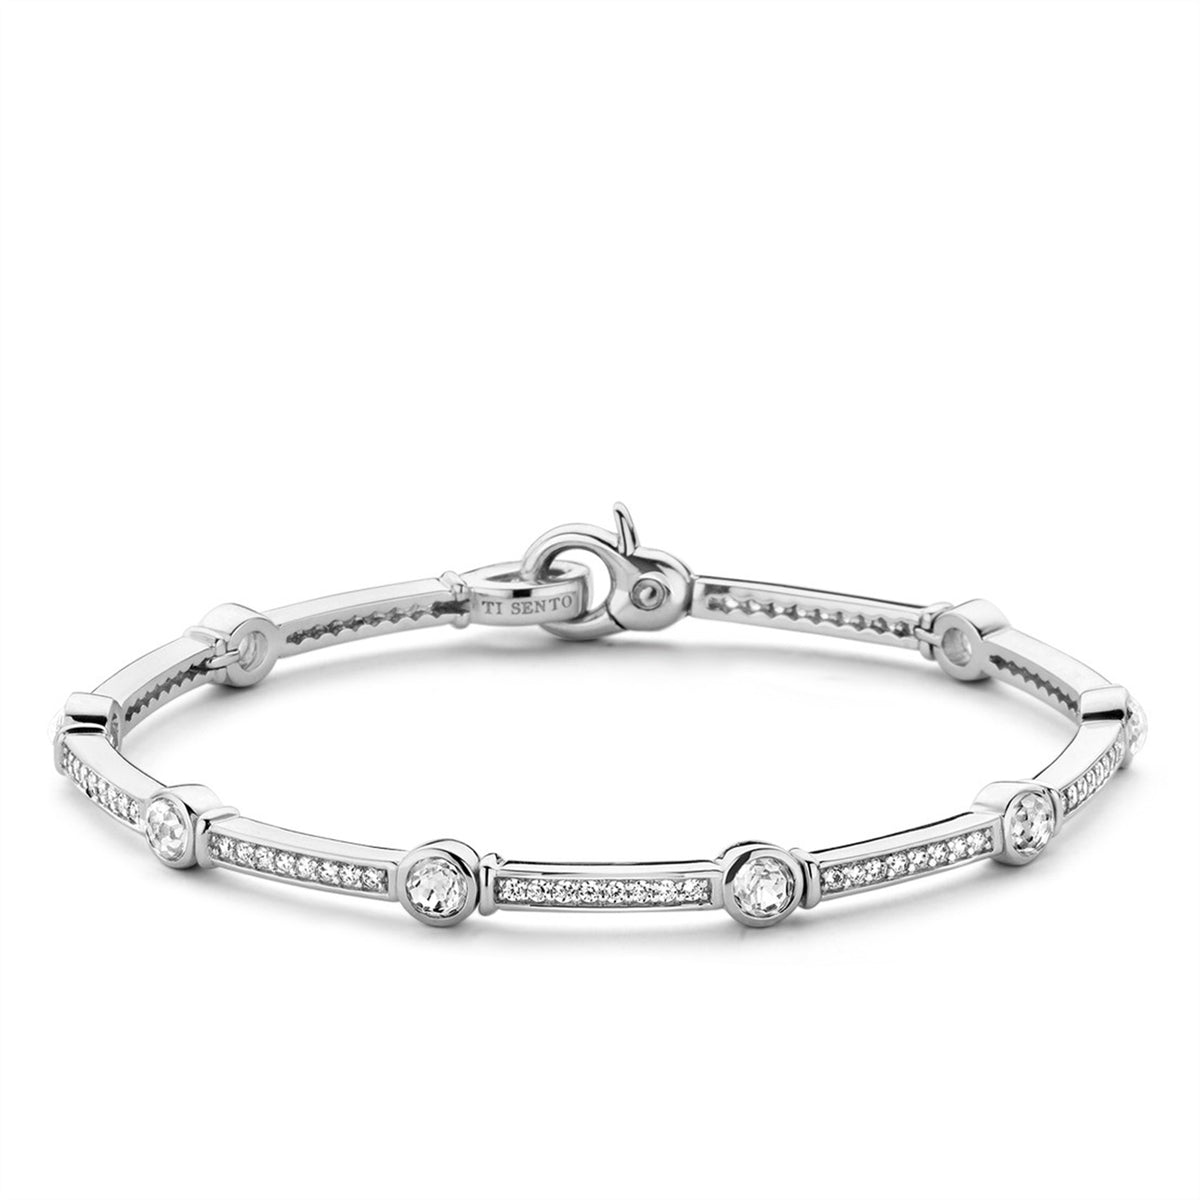 TI SENTO Sterling Silver Station and Line Tennis Bracelet